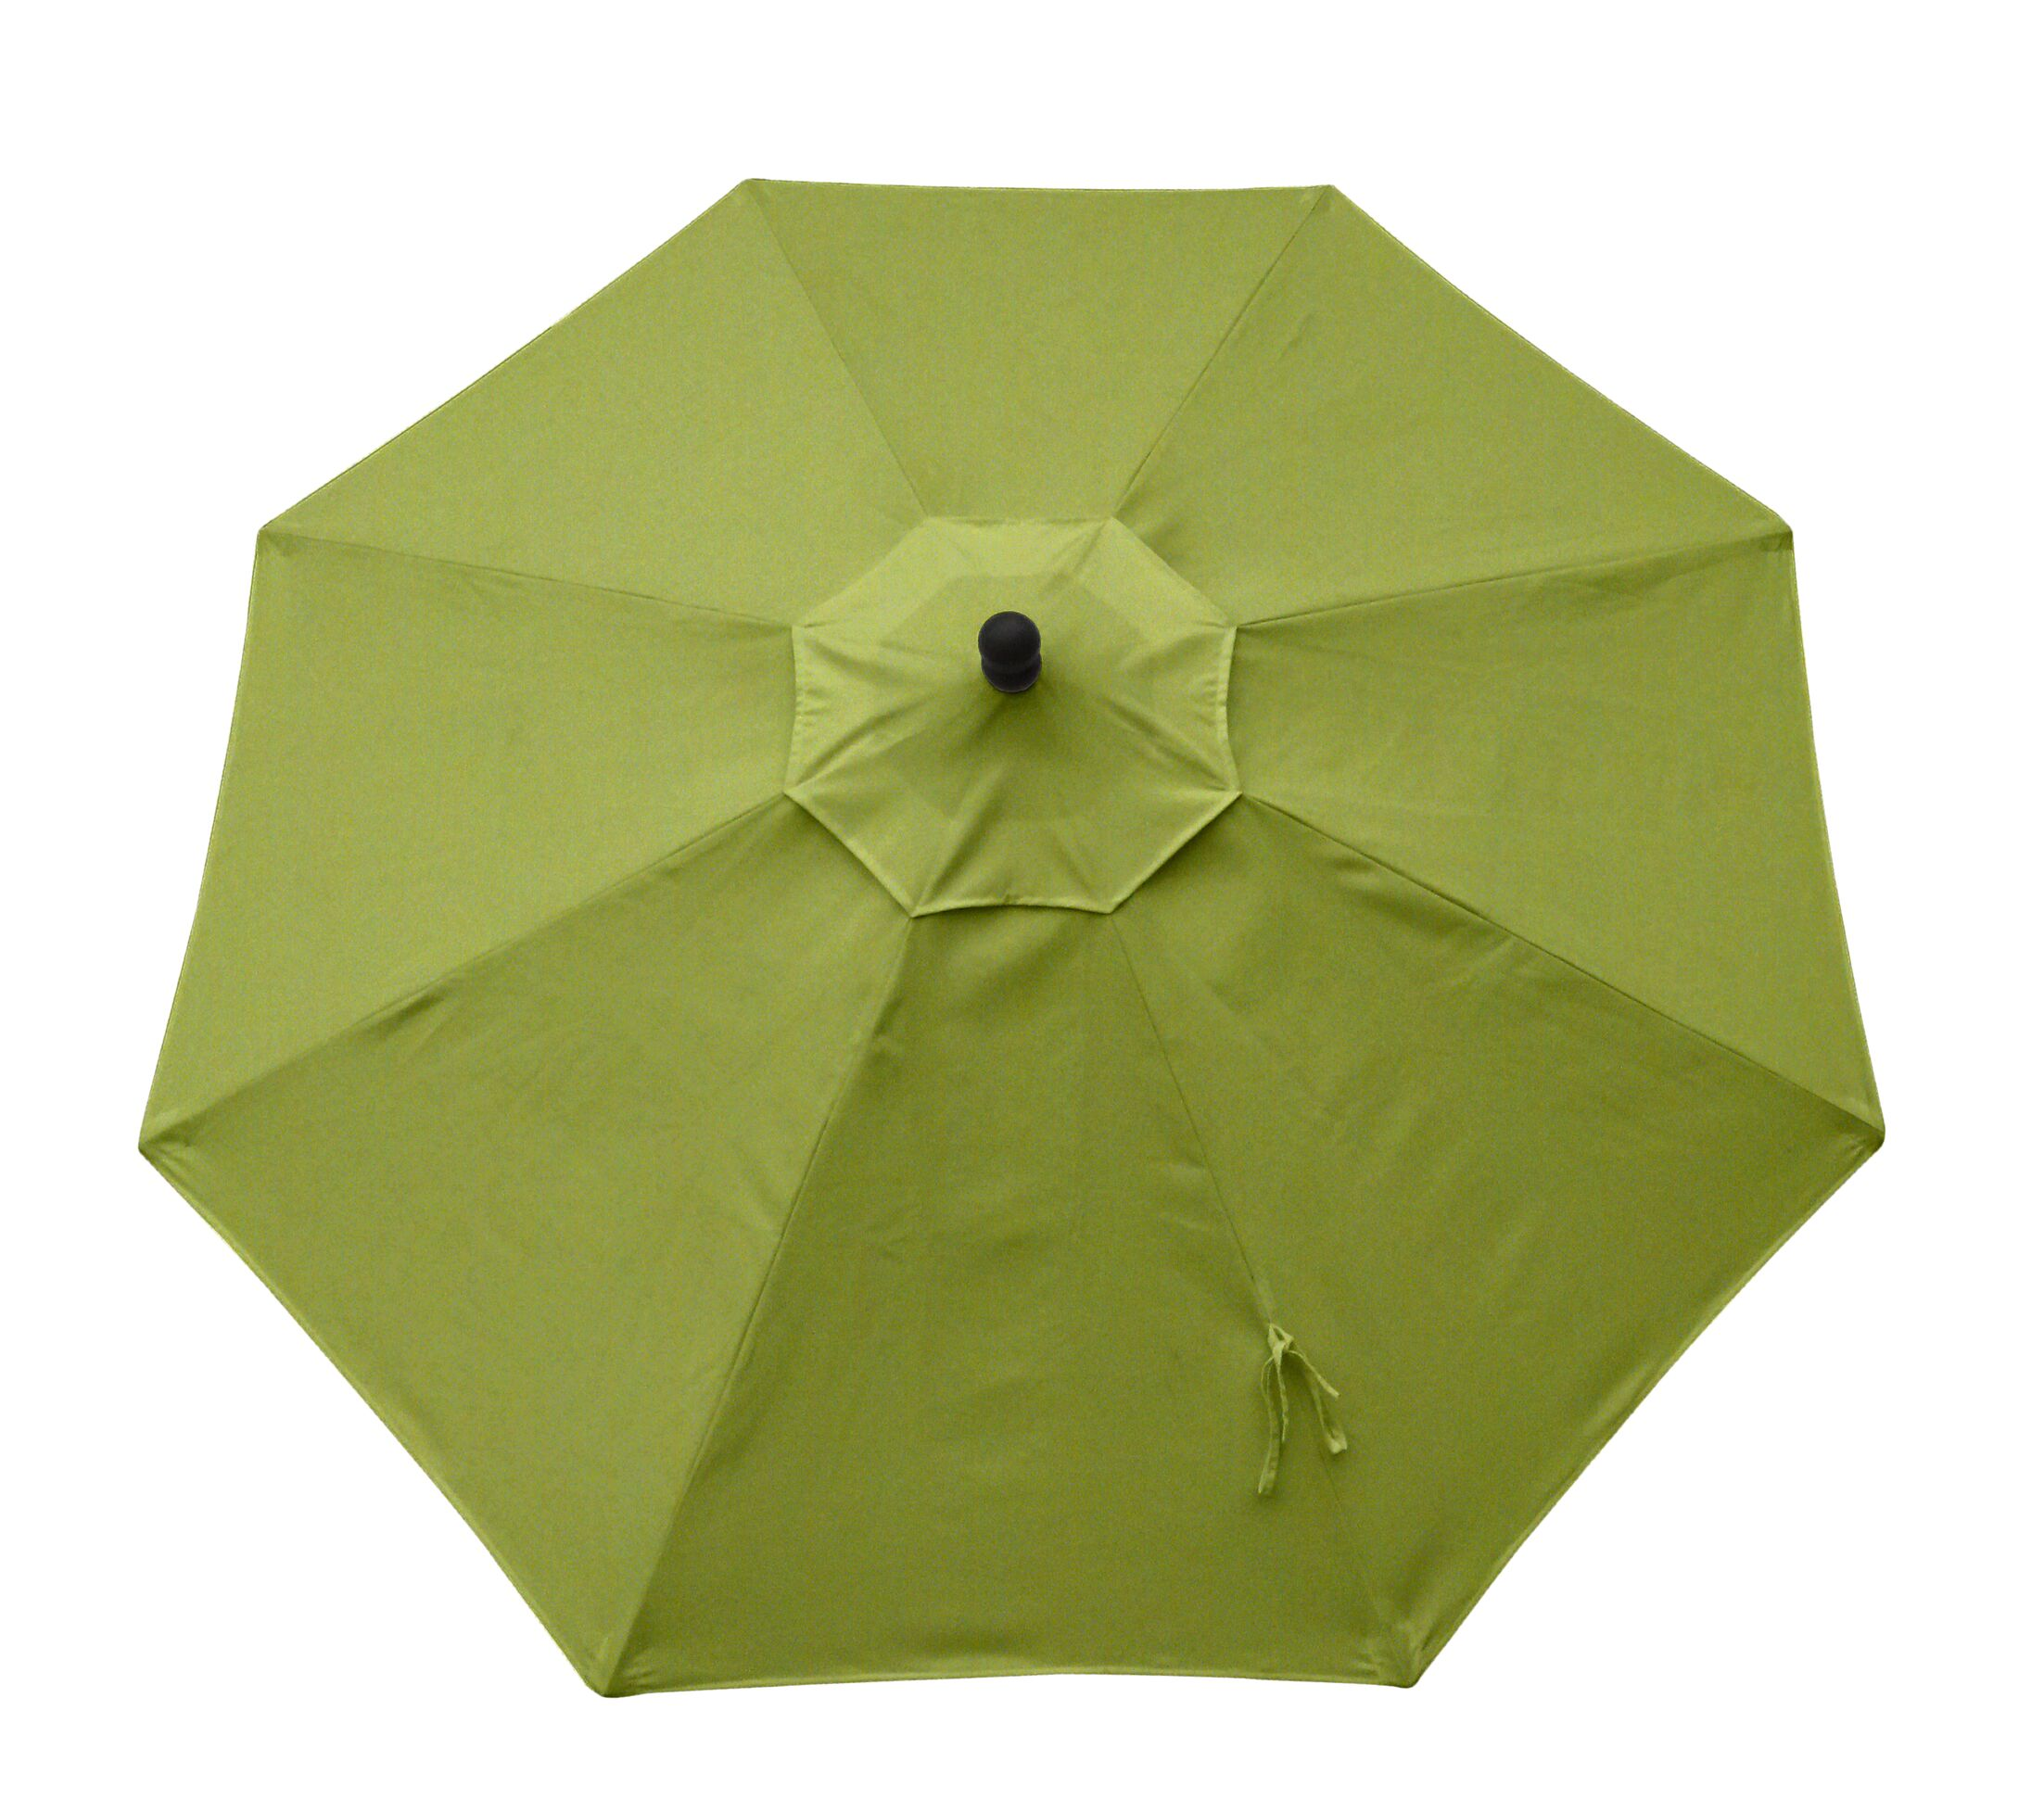 Resort 9' Market Umbrella Fabric: Spectrum Kiwi